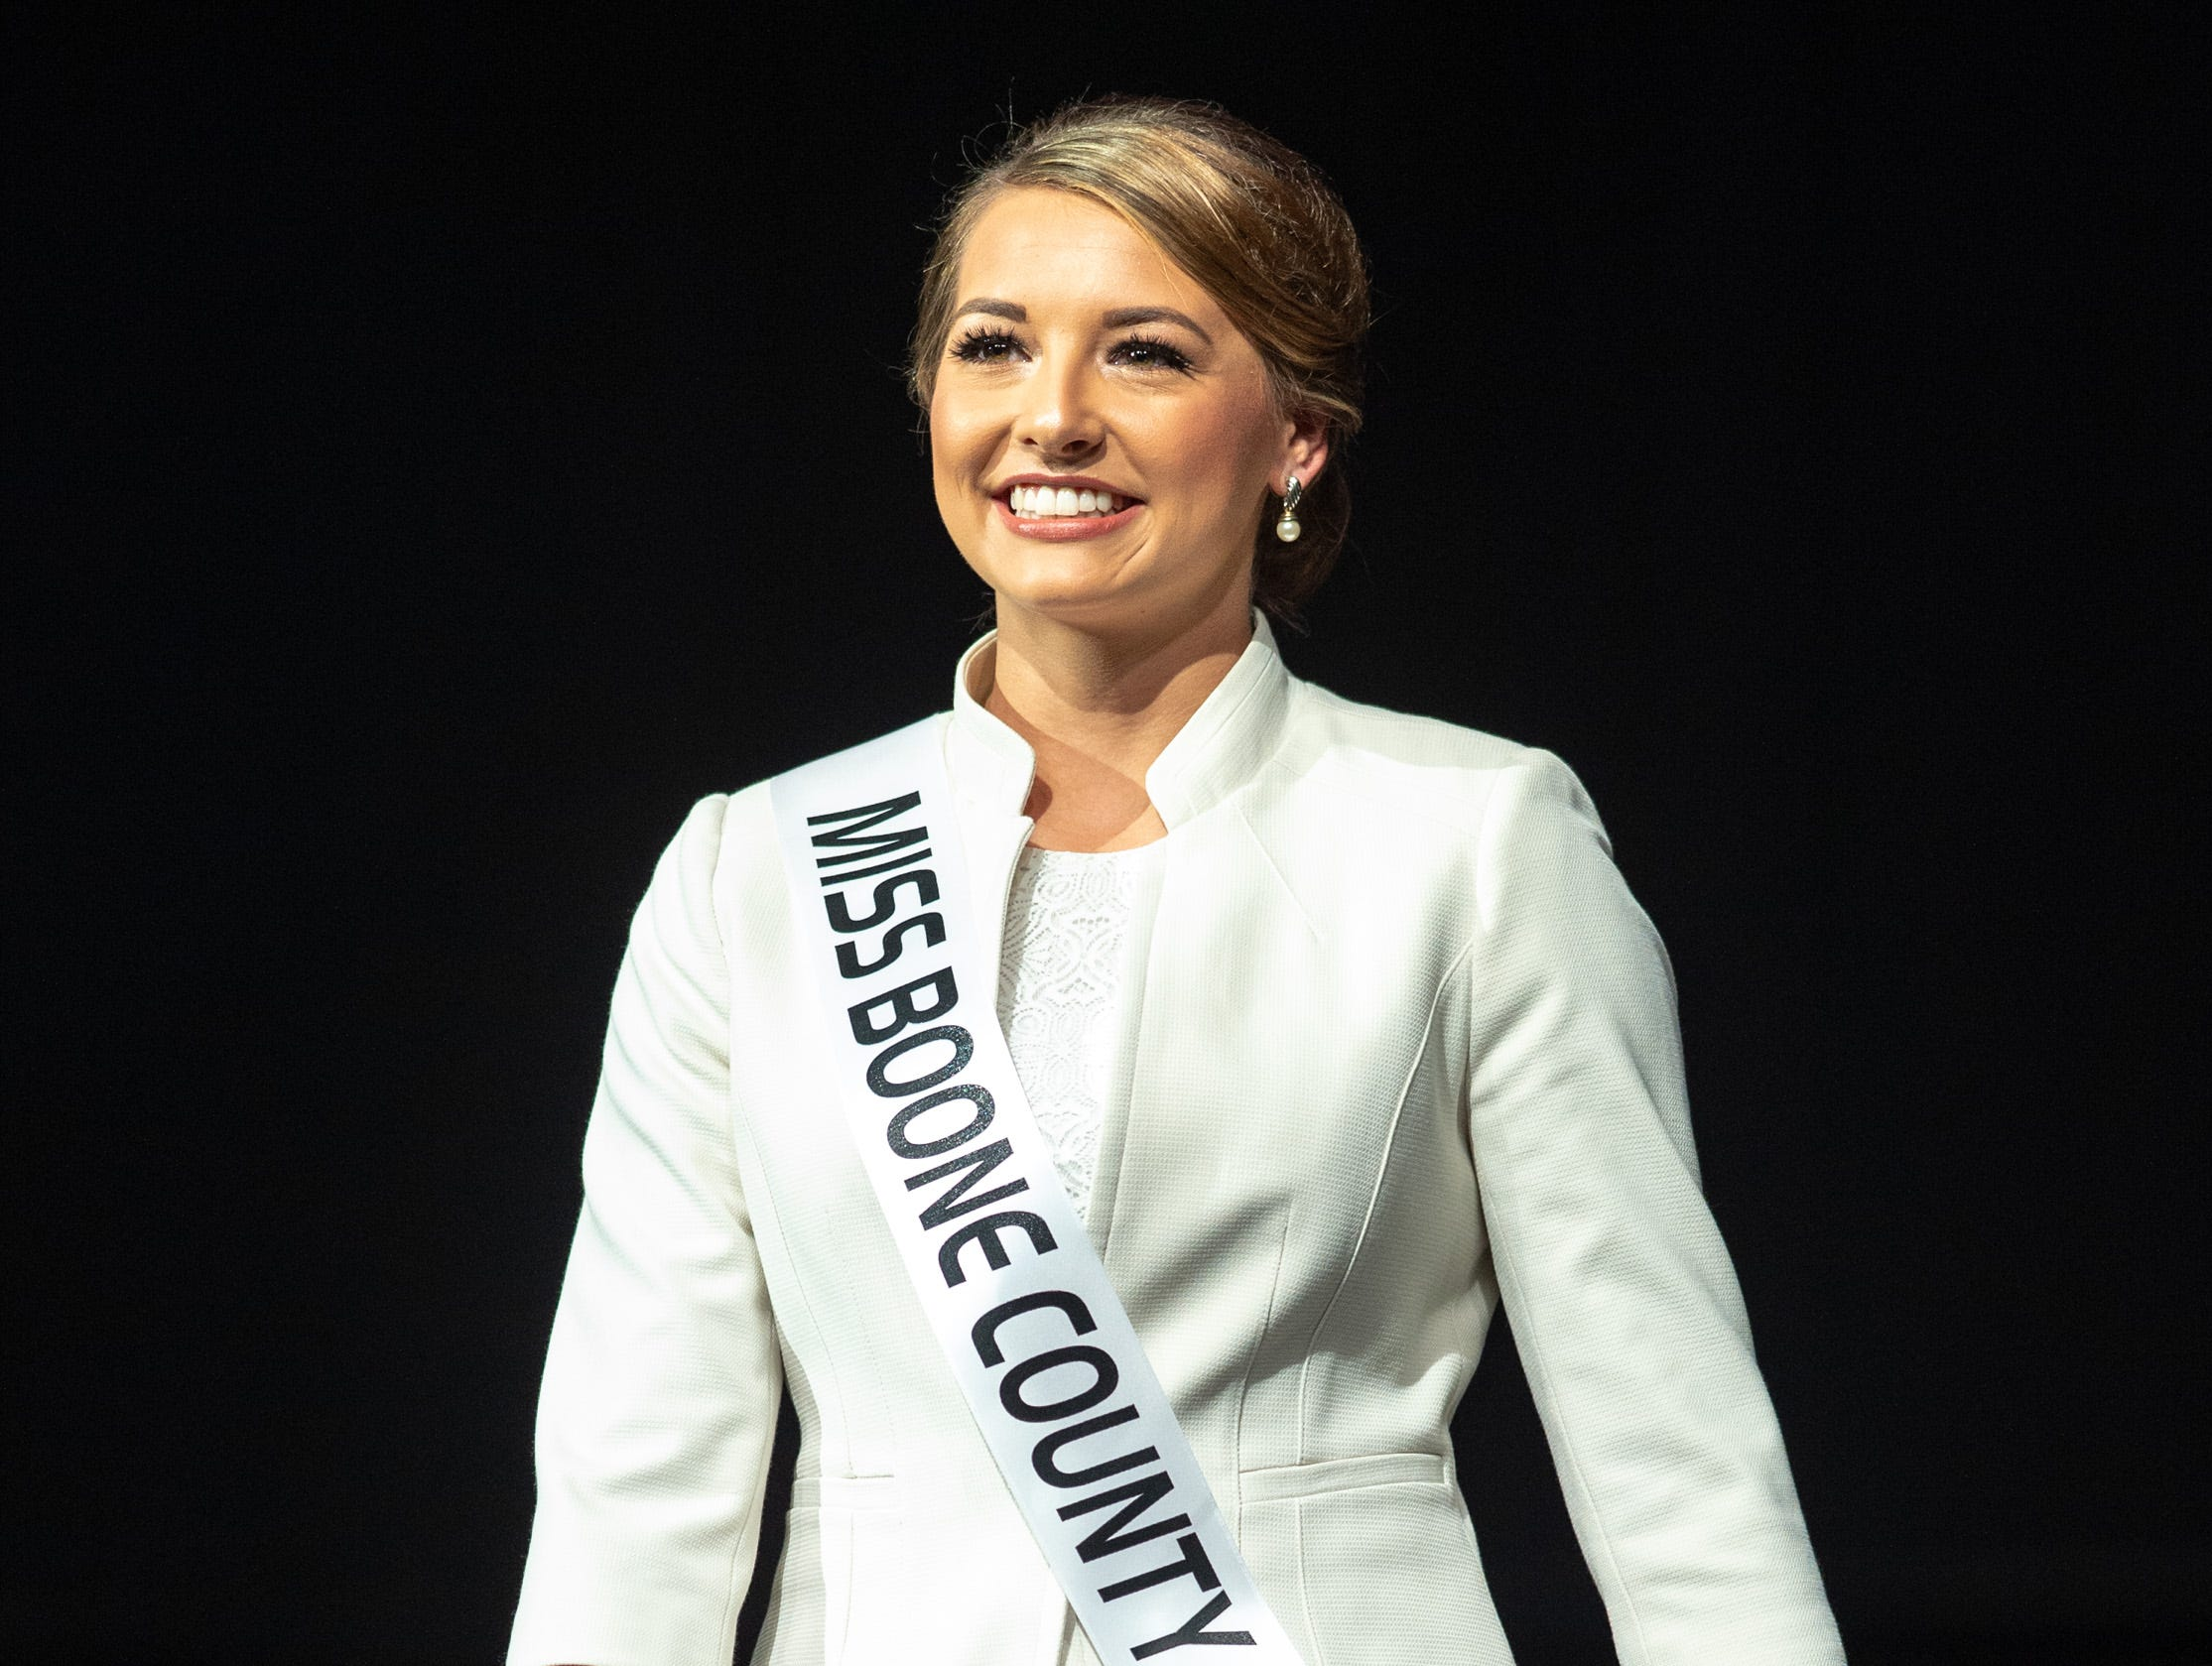 Miss Boone County, Maci French, during the 61st Indiana State Fair Queen Pageant at the Indiana State Fairgrounds in Indianapolis on Sunday, Jan. 6, 2019.